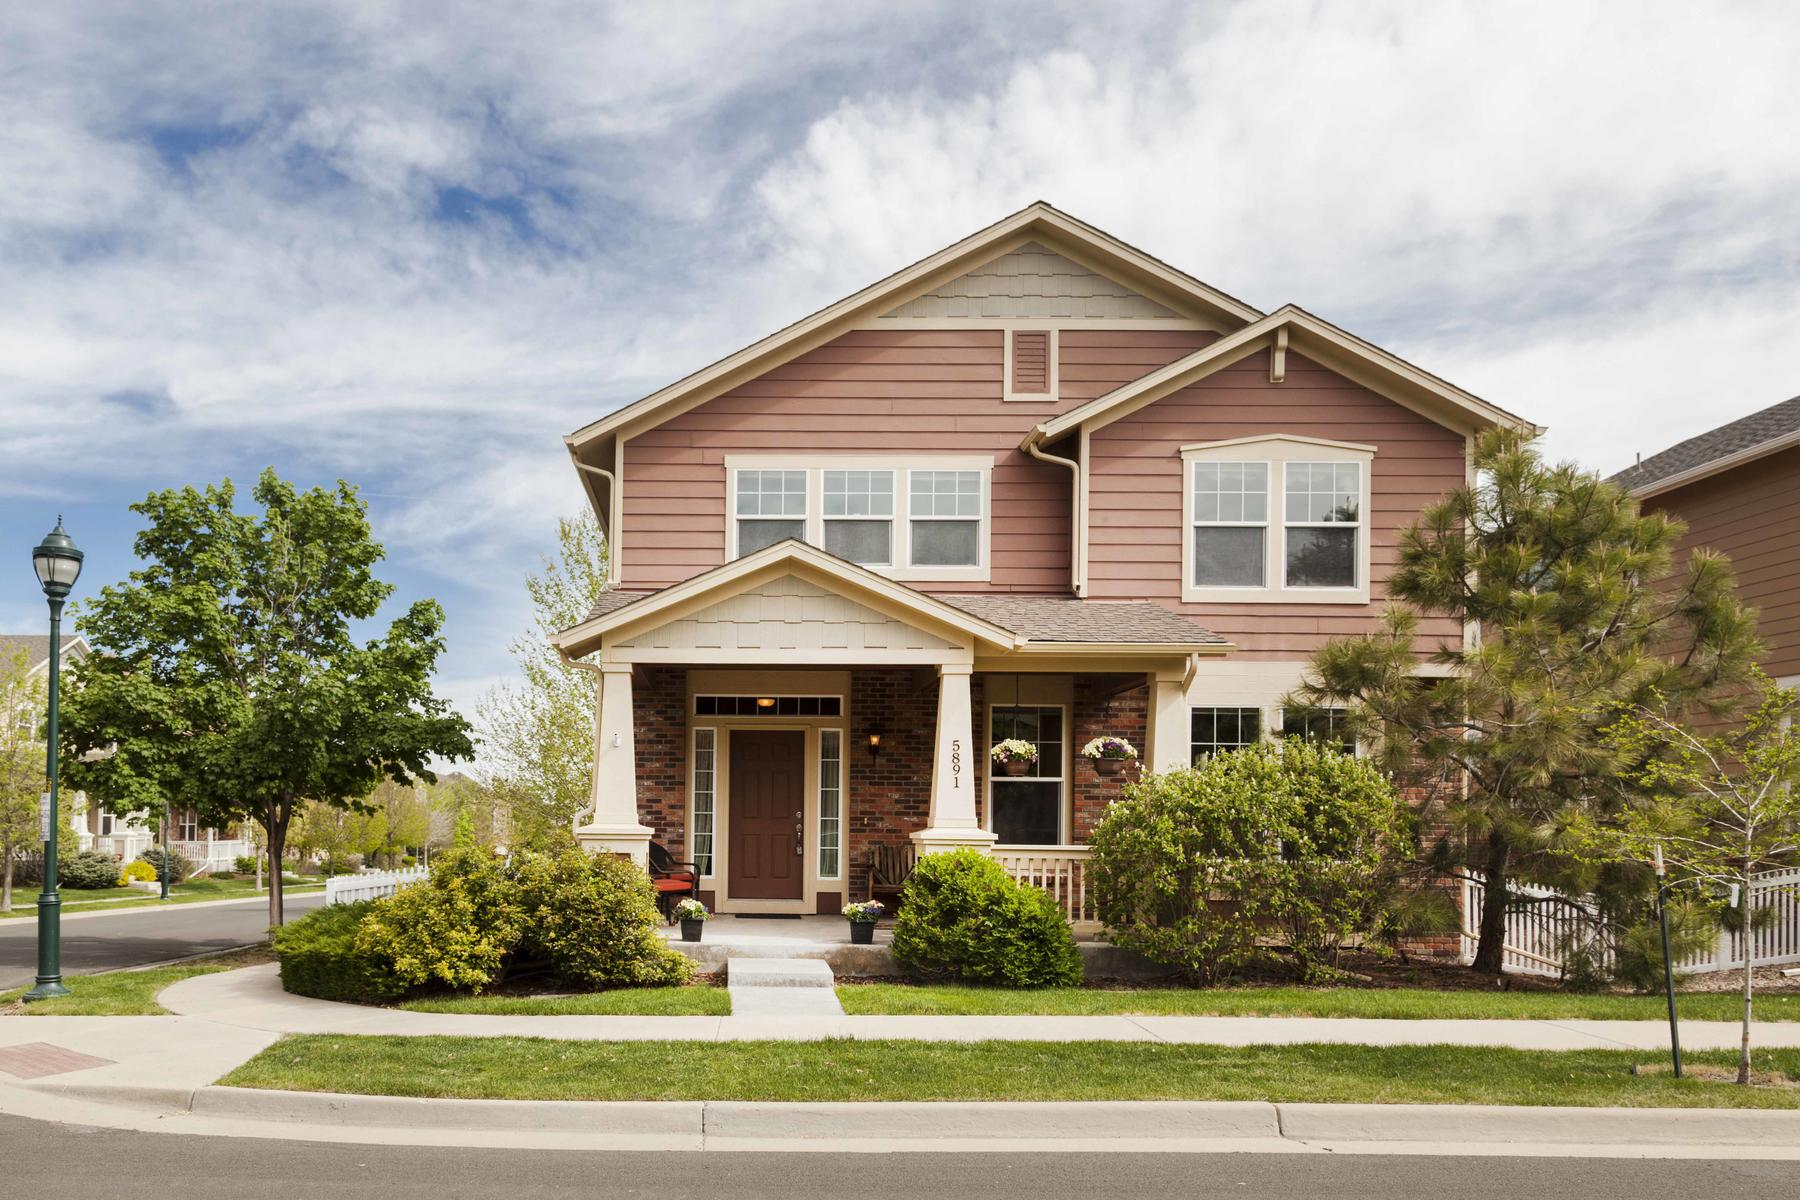 Single Family Home for Active at Well-Maintained Home In Desirable Tuscany Hills 5891 West 94th Place Westminster, Colorado 80031 United States